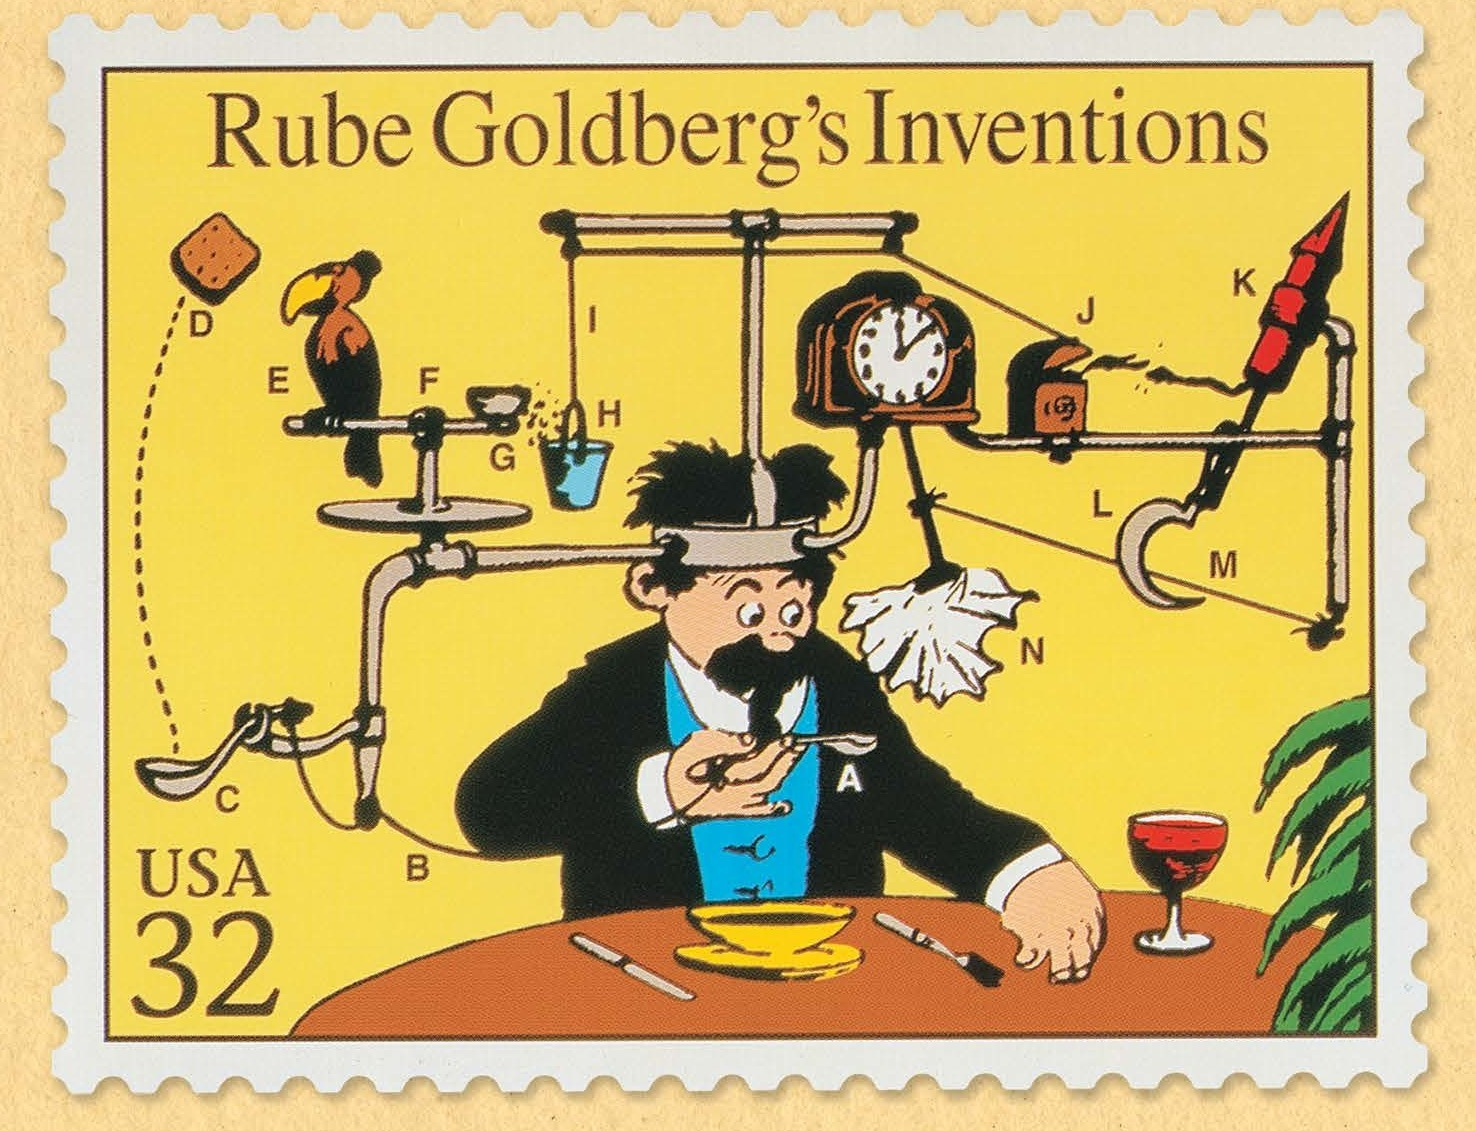 Rube Goldberg Inventions USPS stamp